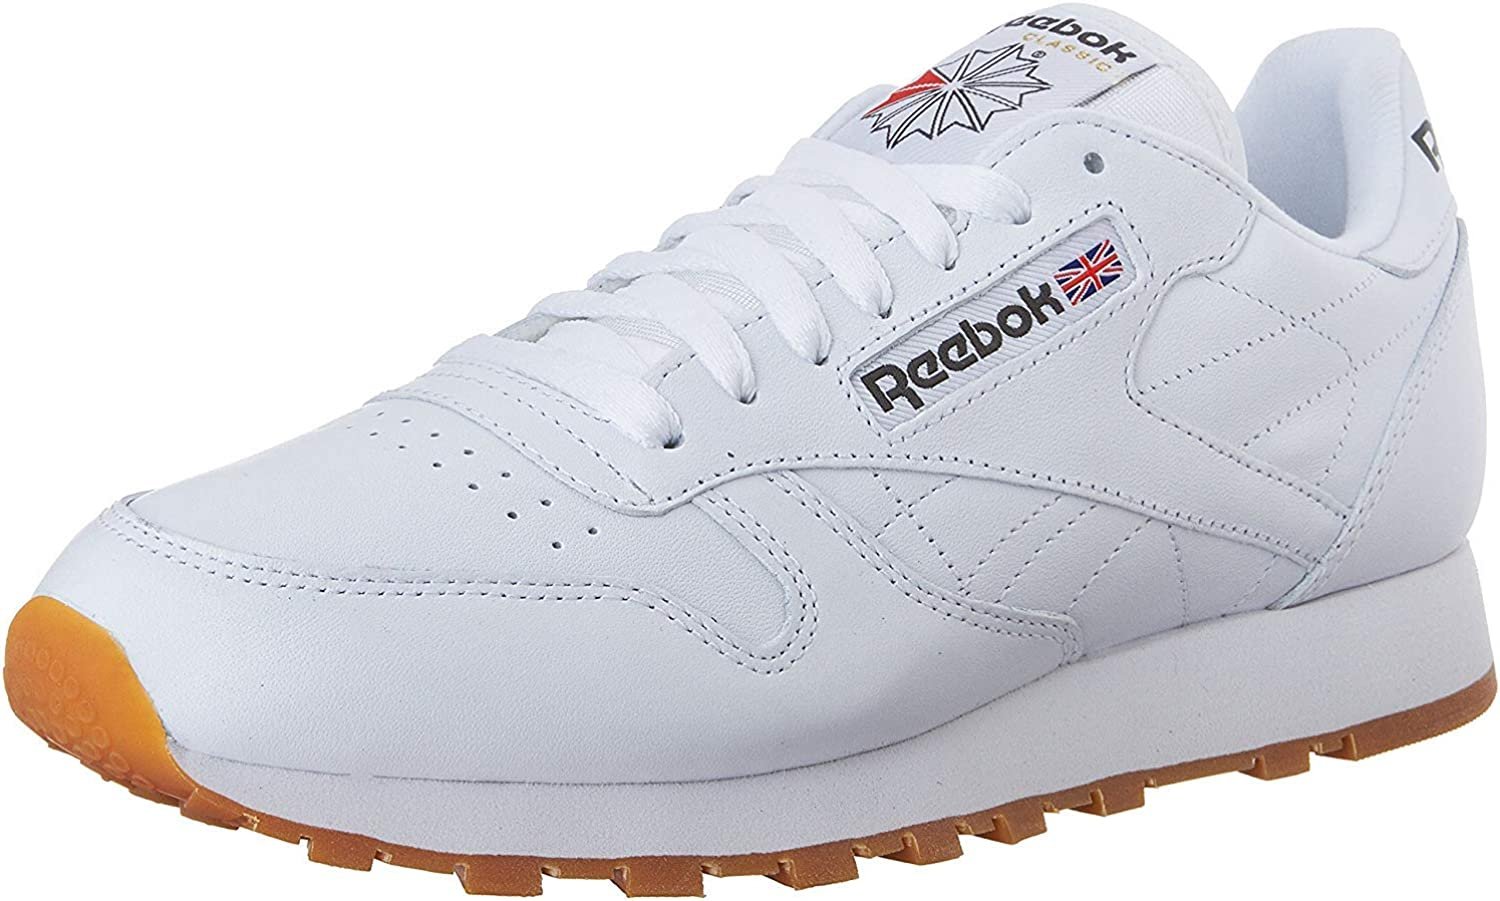 Retro Sneakers, Vintage Tennis Shoes Reebok Mens Classic Leather Fashion Sneakers White/Gum 11.5 M US $55.99 AT vintagedancer.com